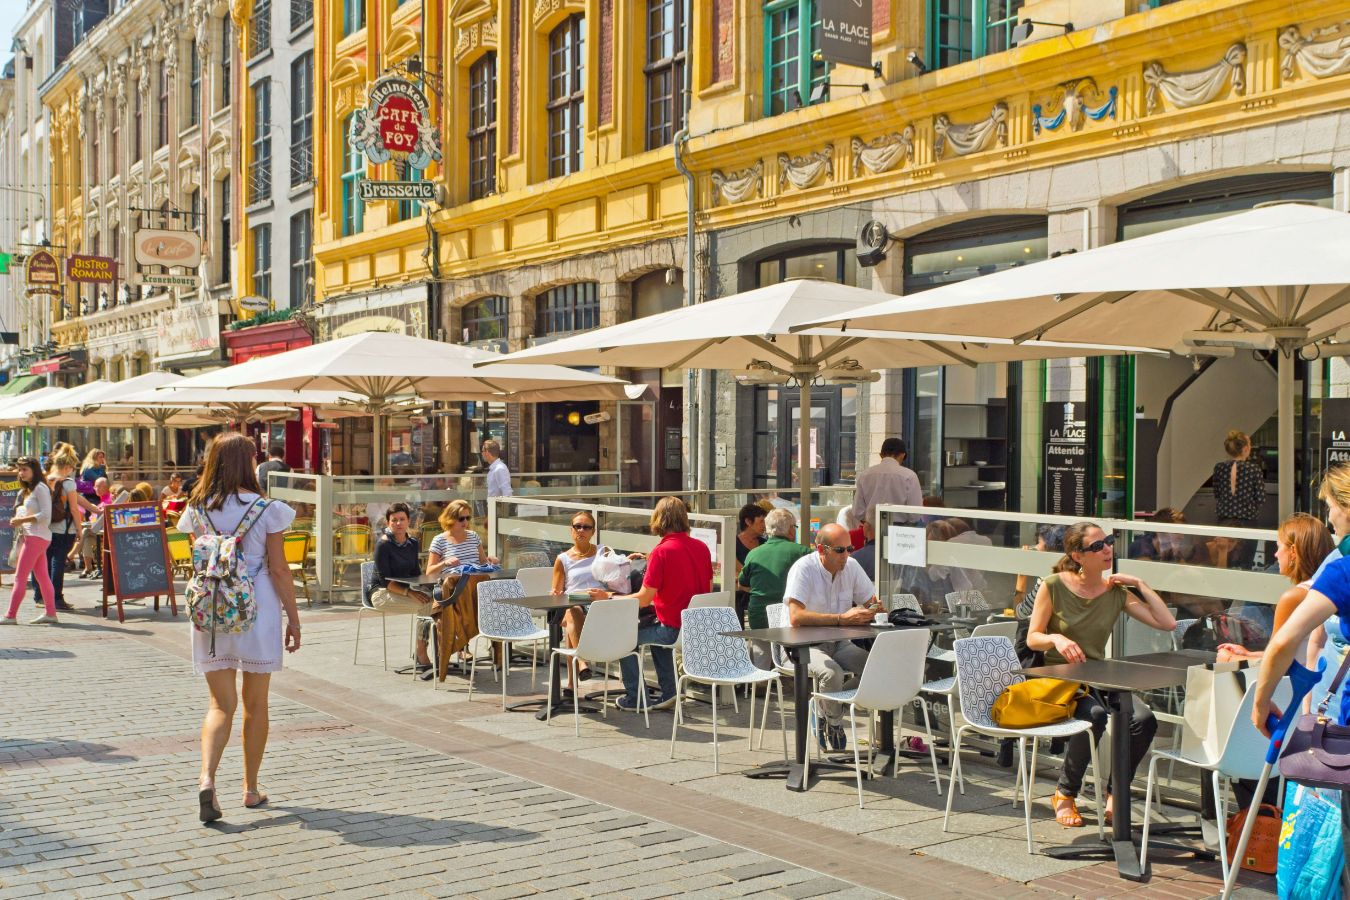 France - Hauts-de-France - Lille - Street cafe restaurant